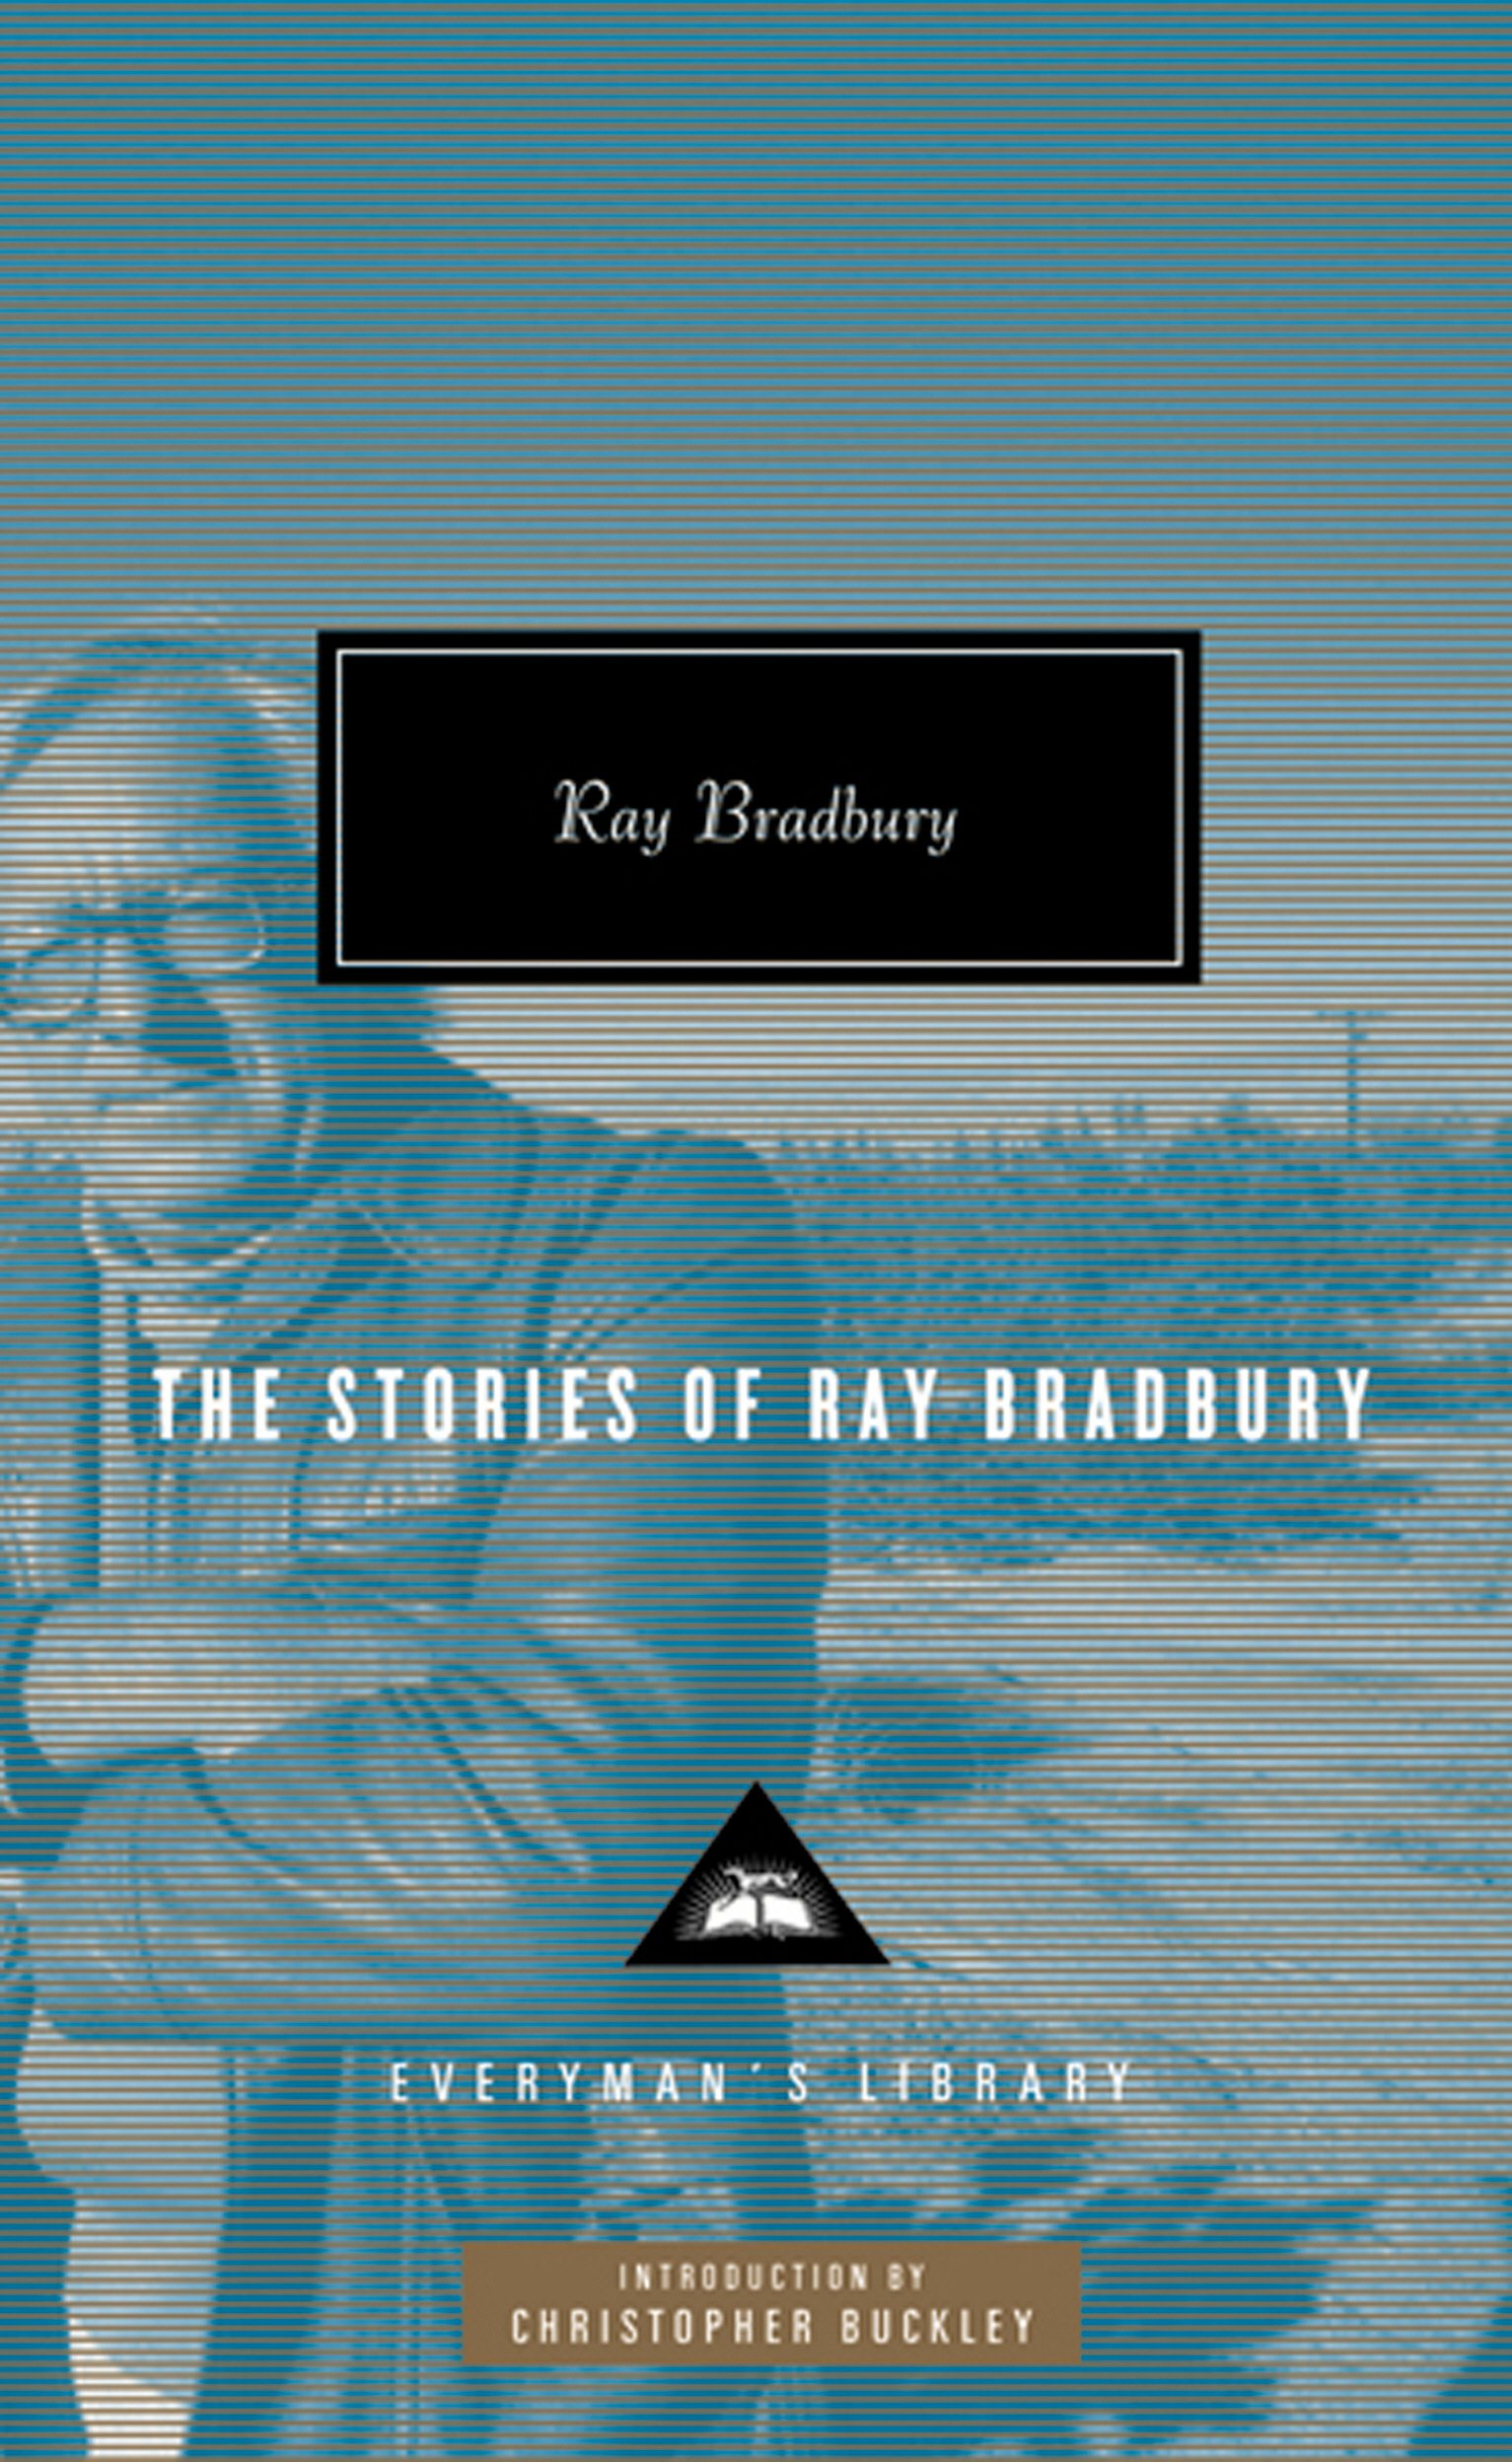 The Stories of Ray Bradbury (Everyman Library): Amazon.es: Ray Bradbury: Libros en idiomas extranjeros